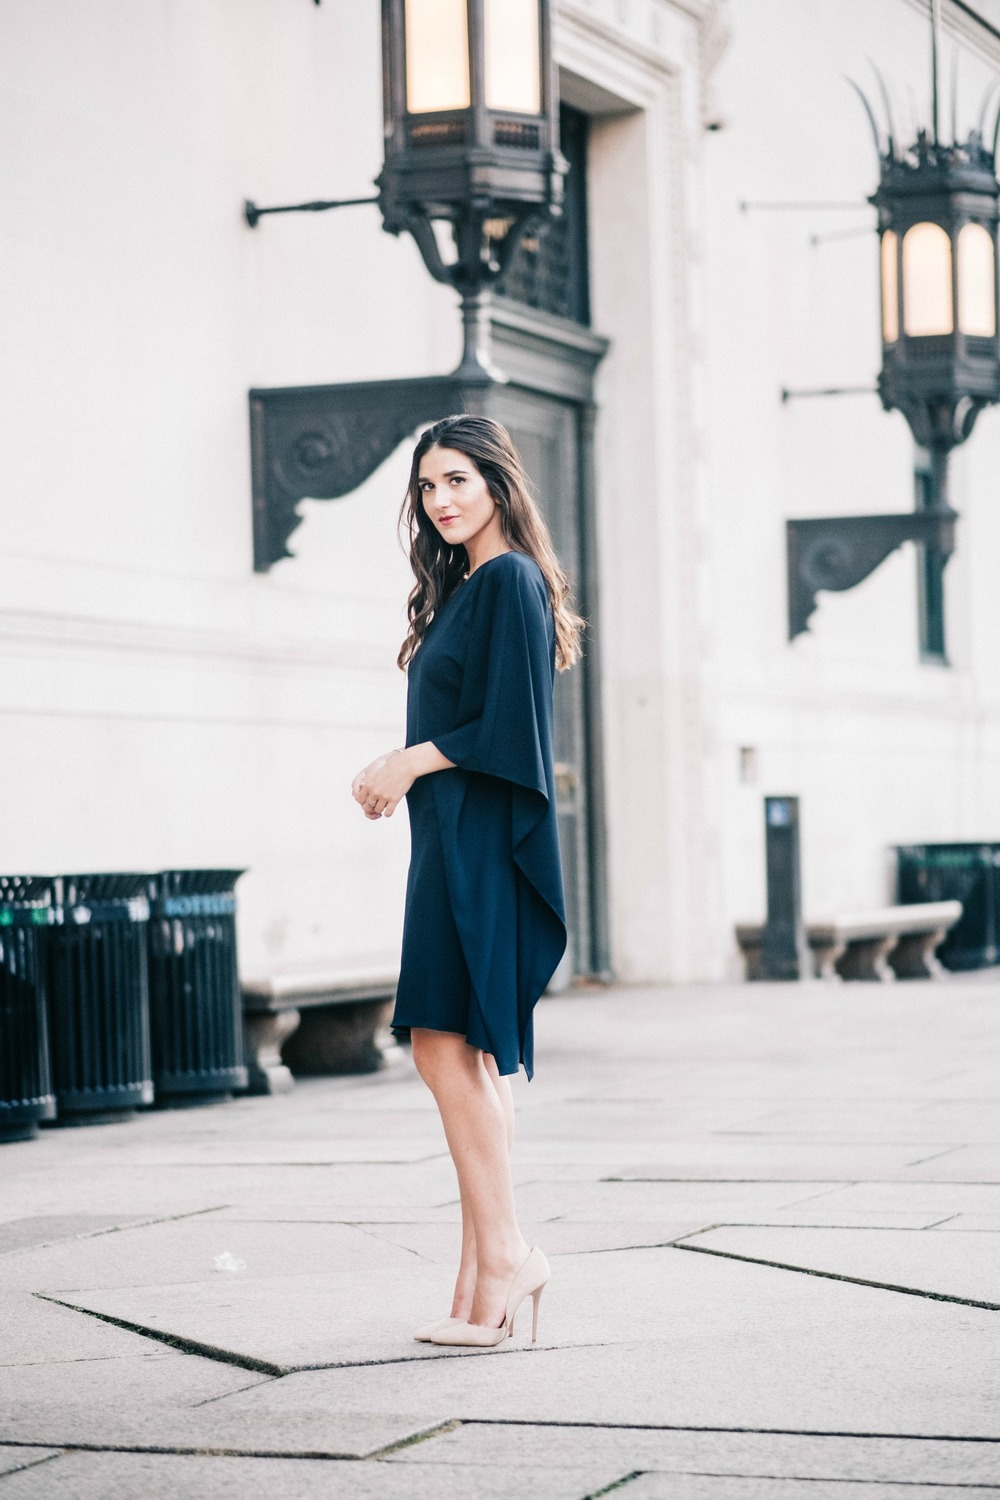 One Shoulder Dress Jay Godgrey Louboutins & Love Fashion Blog Esther Santer NYC Street Style Blogger Outfit OOTD Trendy Girl Women Elegant Fancy Attire Hair Inspo Photoshoot Nude Heels Steve Madden Navy Gold Jewelry Buy Pretty Beautiful Shoes Shopping.jpg